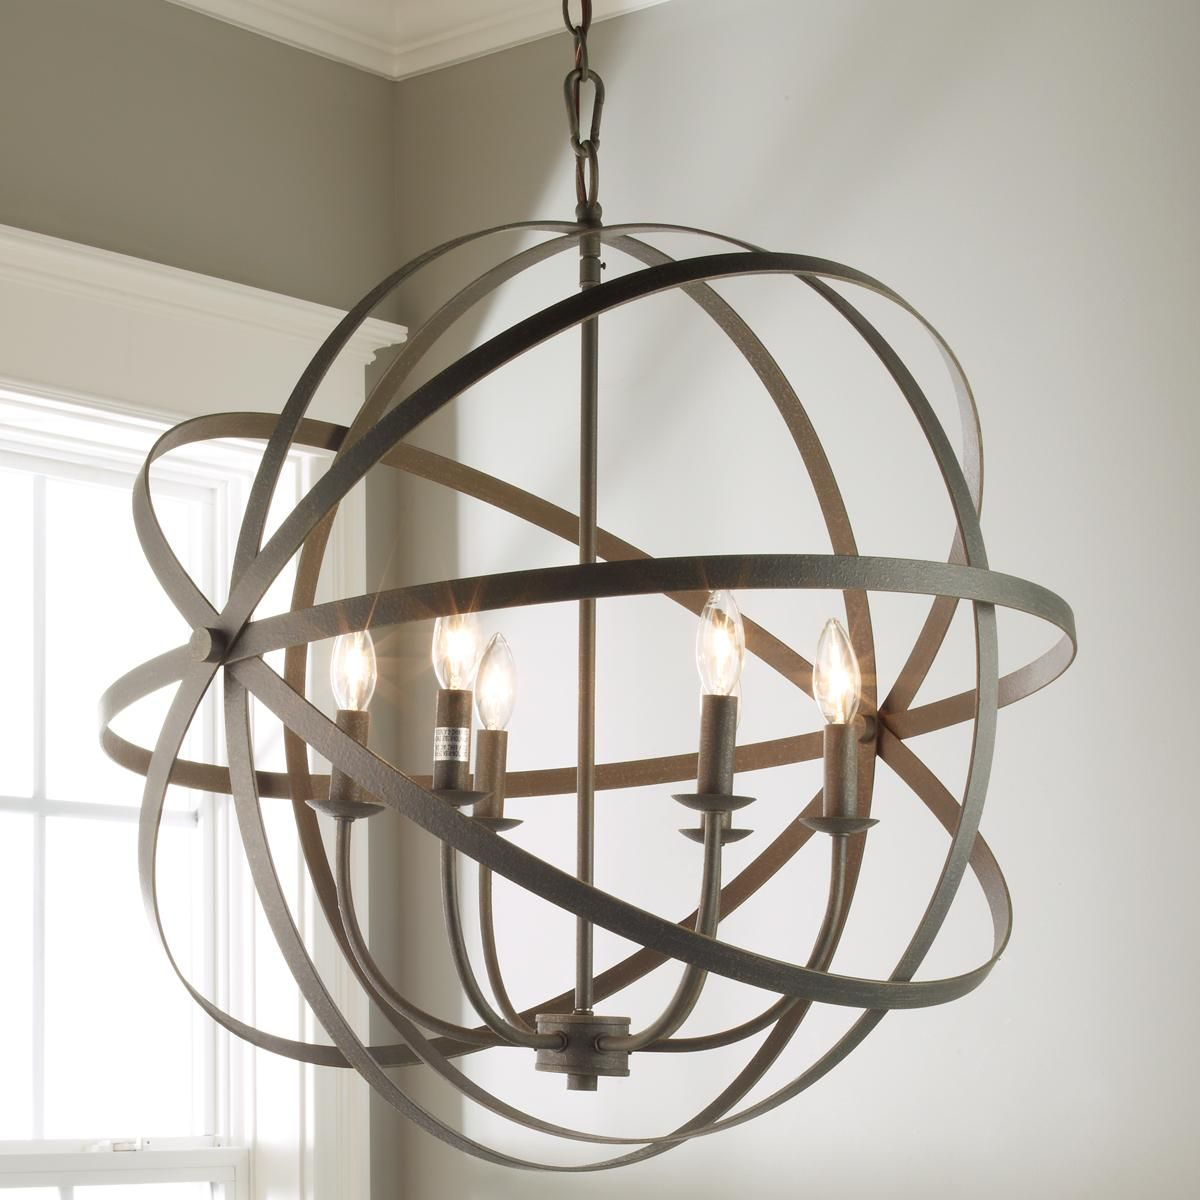 Zinc Orbit Globe Chandelier – 6 Light | Bedding, Lighting Intended For Gregoire 6 Light Globe Chandeliers (View 20 of 30)